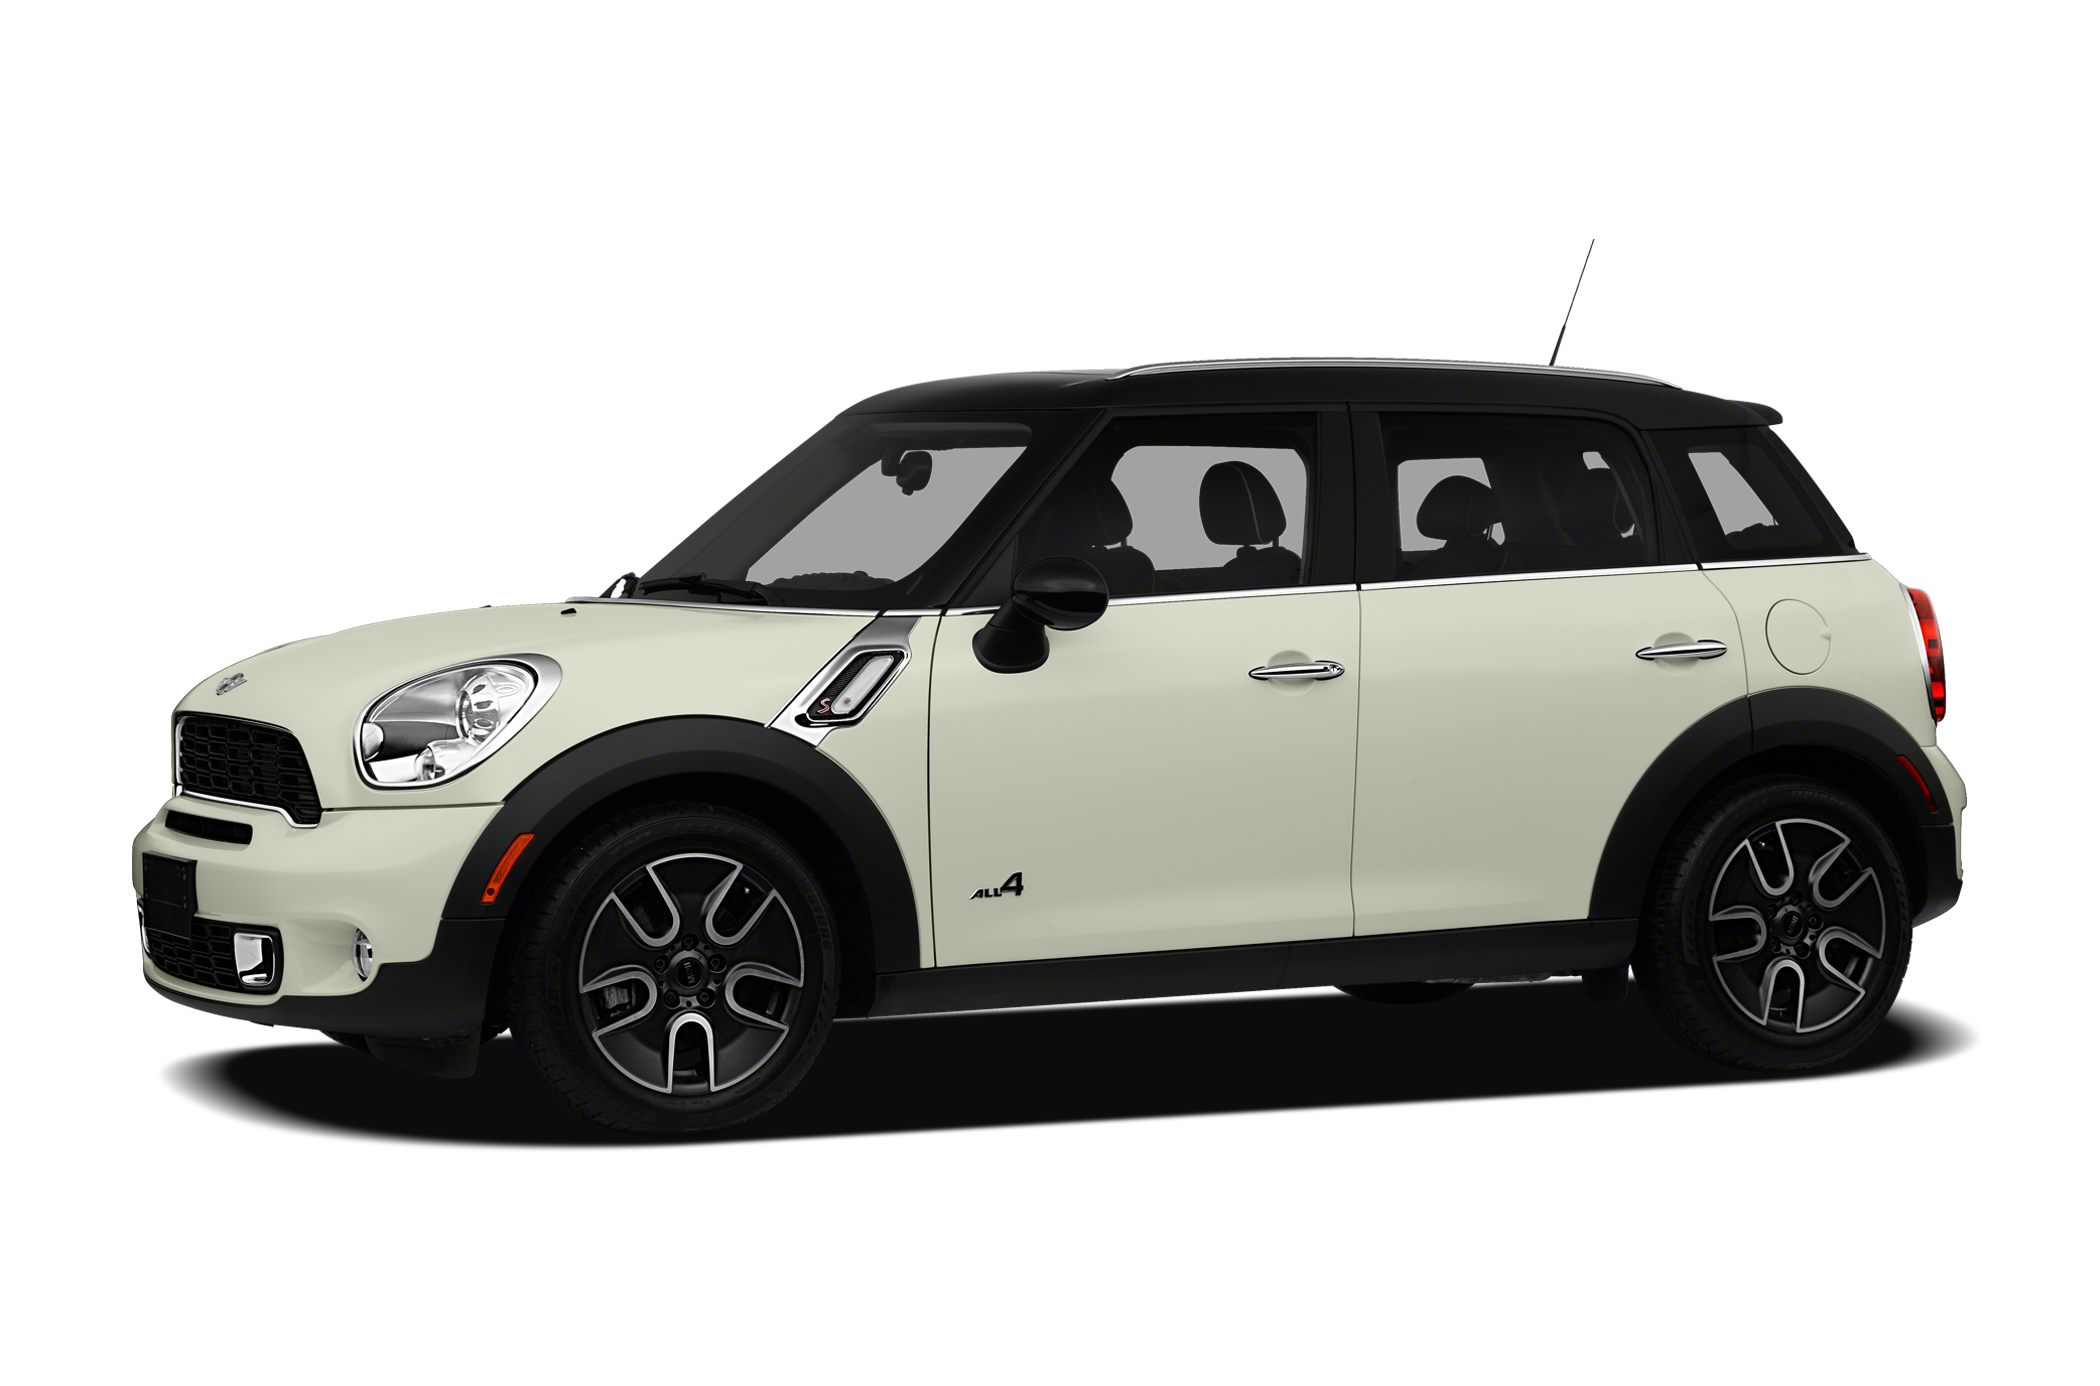 2012 MINI Cooper S Countryman  ONE PRICE STOP NO HASSLE NO HAGGLE CAR BUYING EXPERIENCE